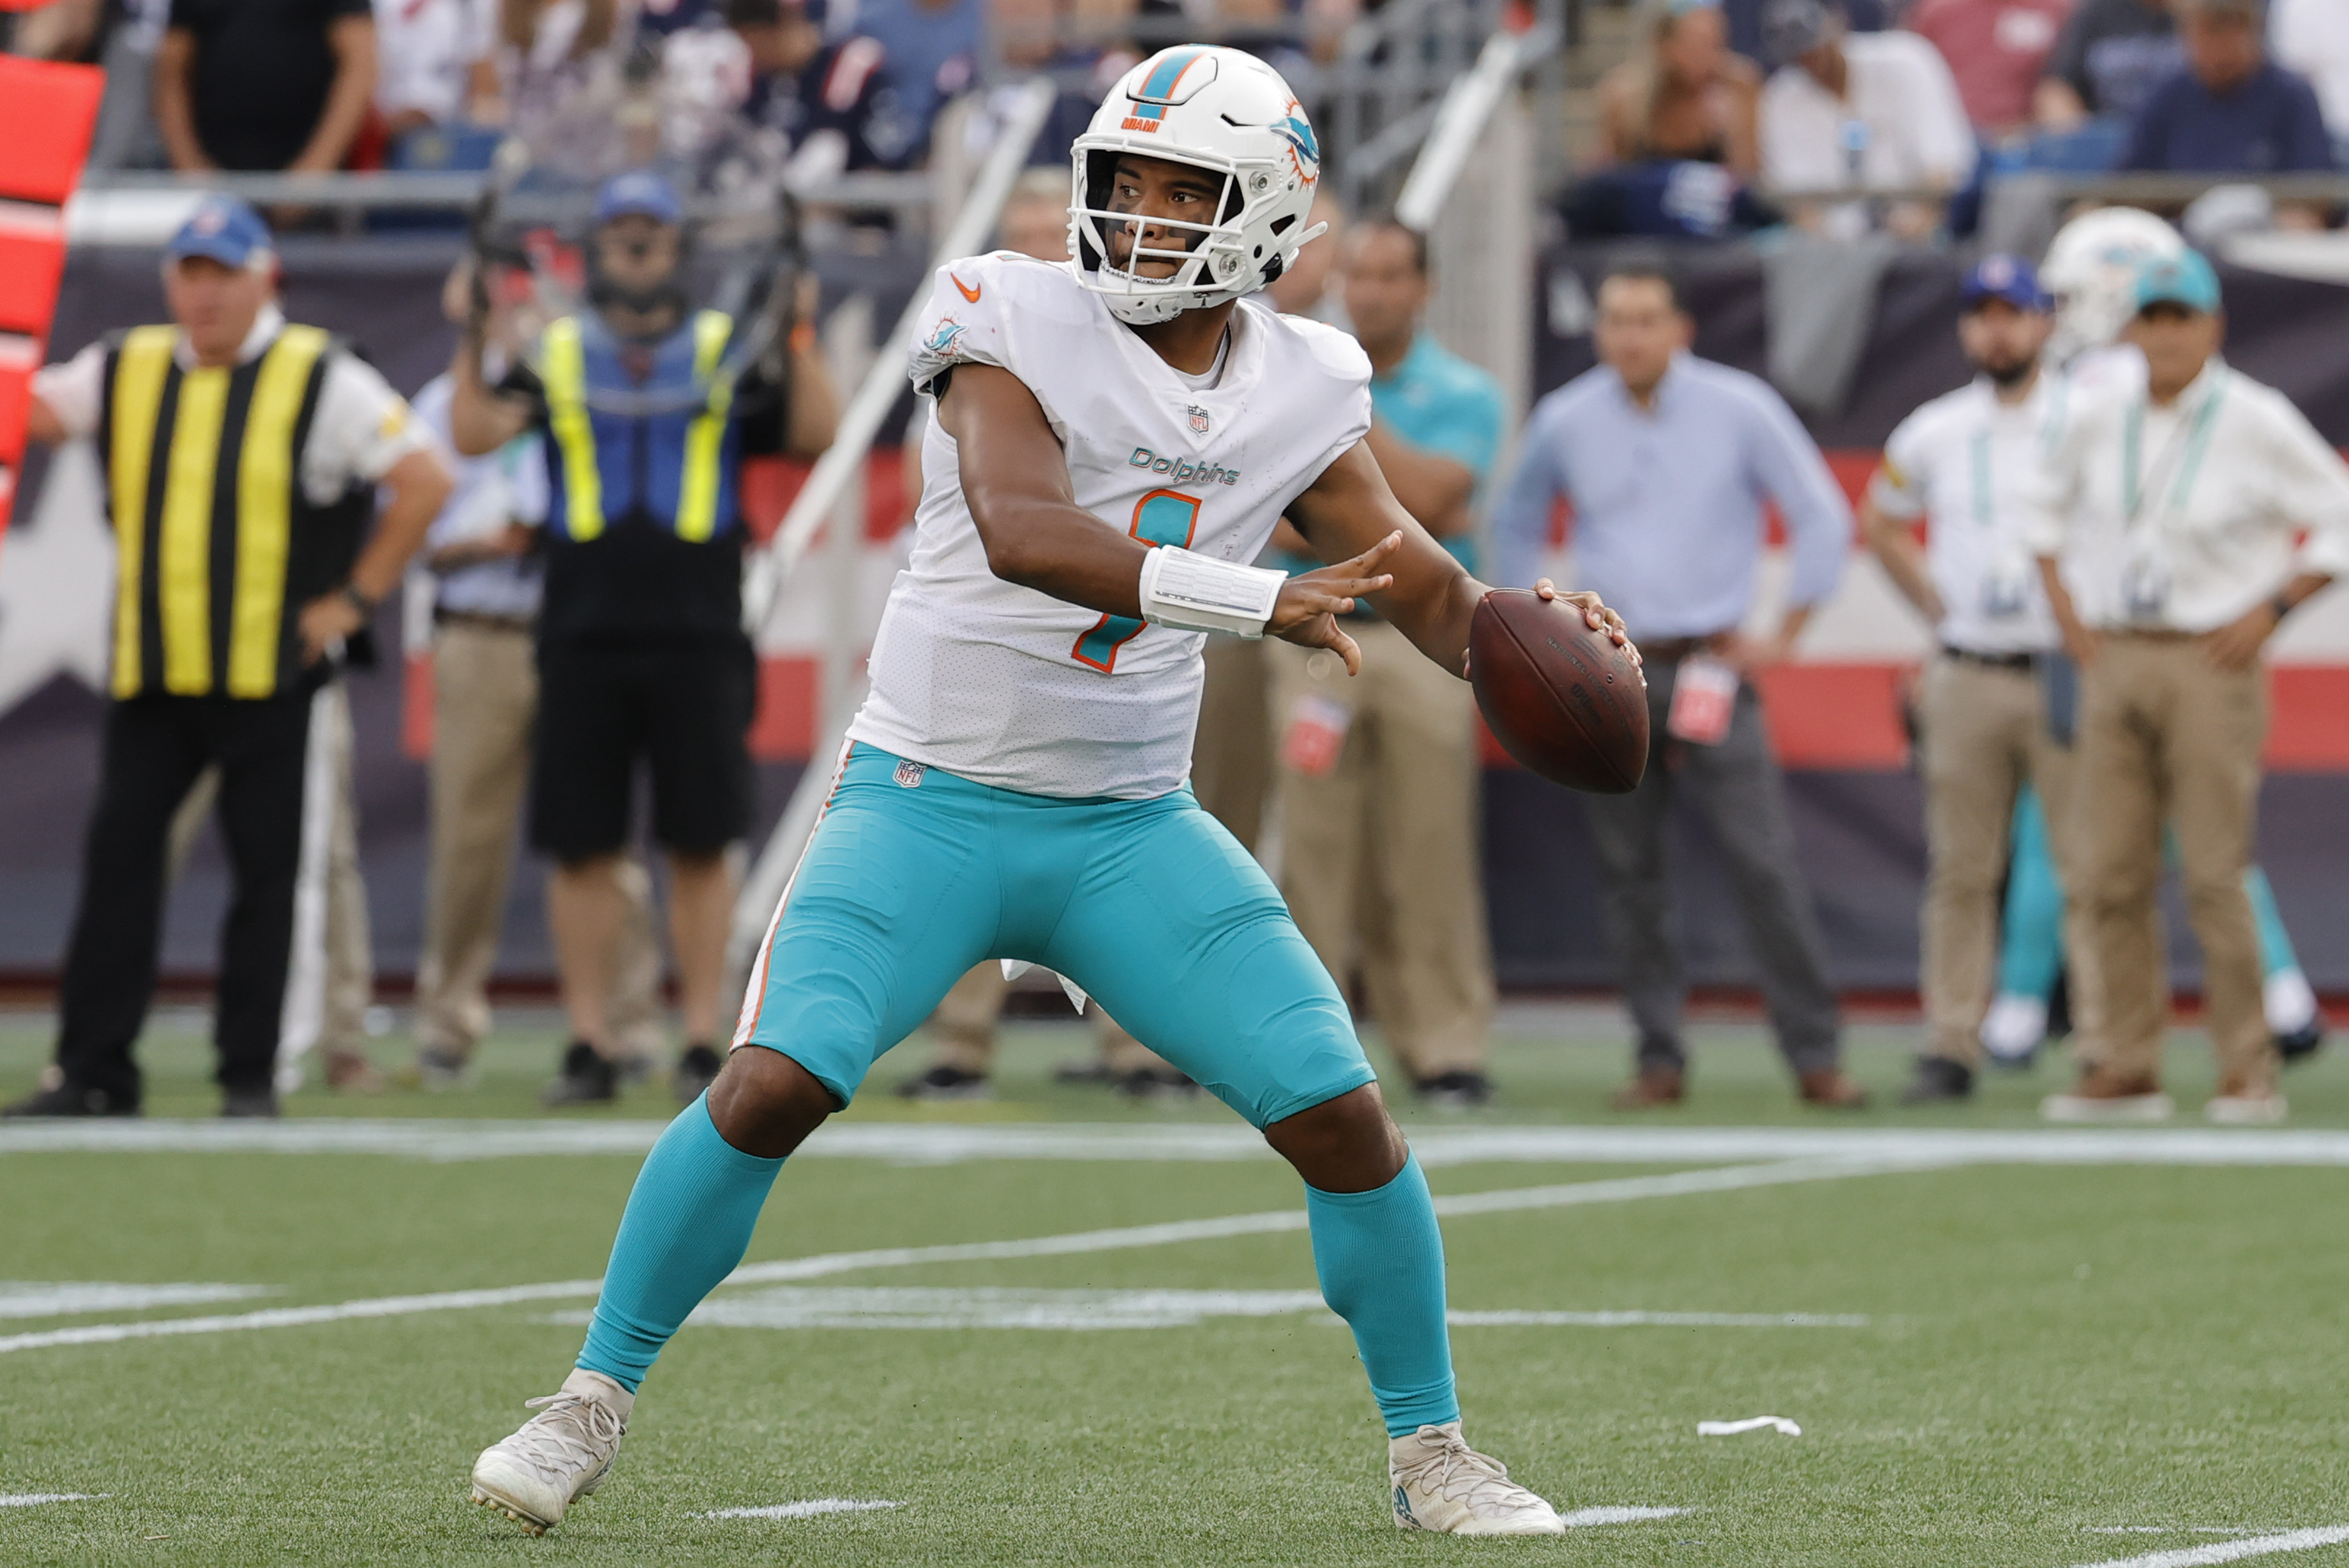 Dolphins' Tua Tagovailoa Out vs. Raiders with Rib Injury; Jacoby Brissett Will Start